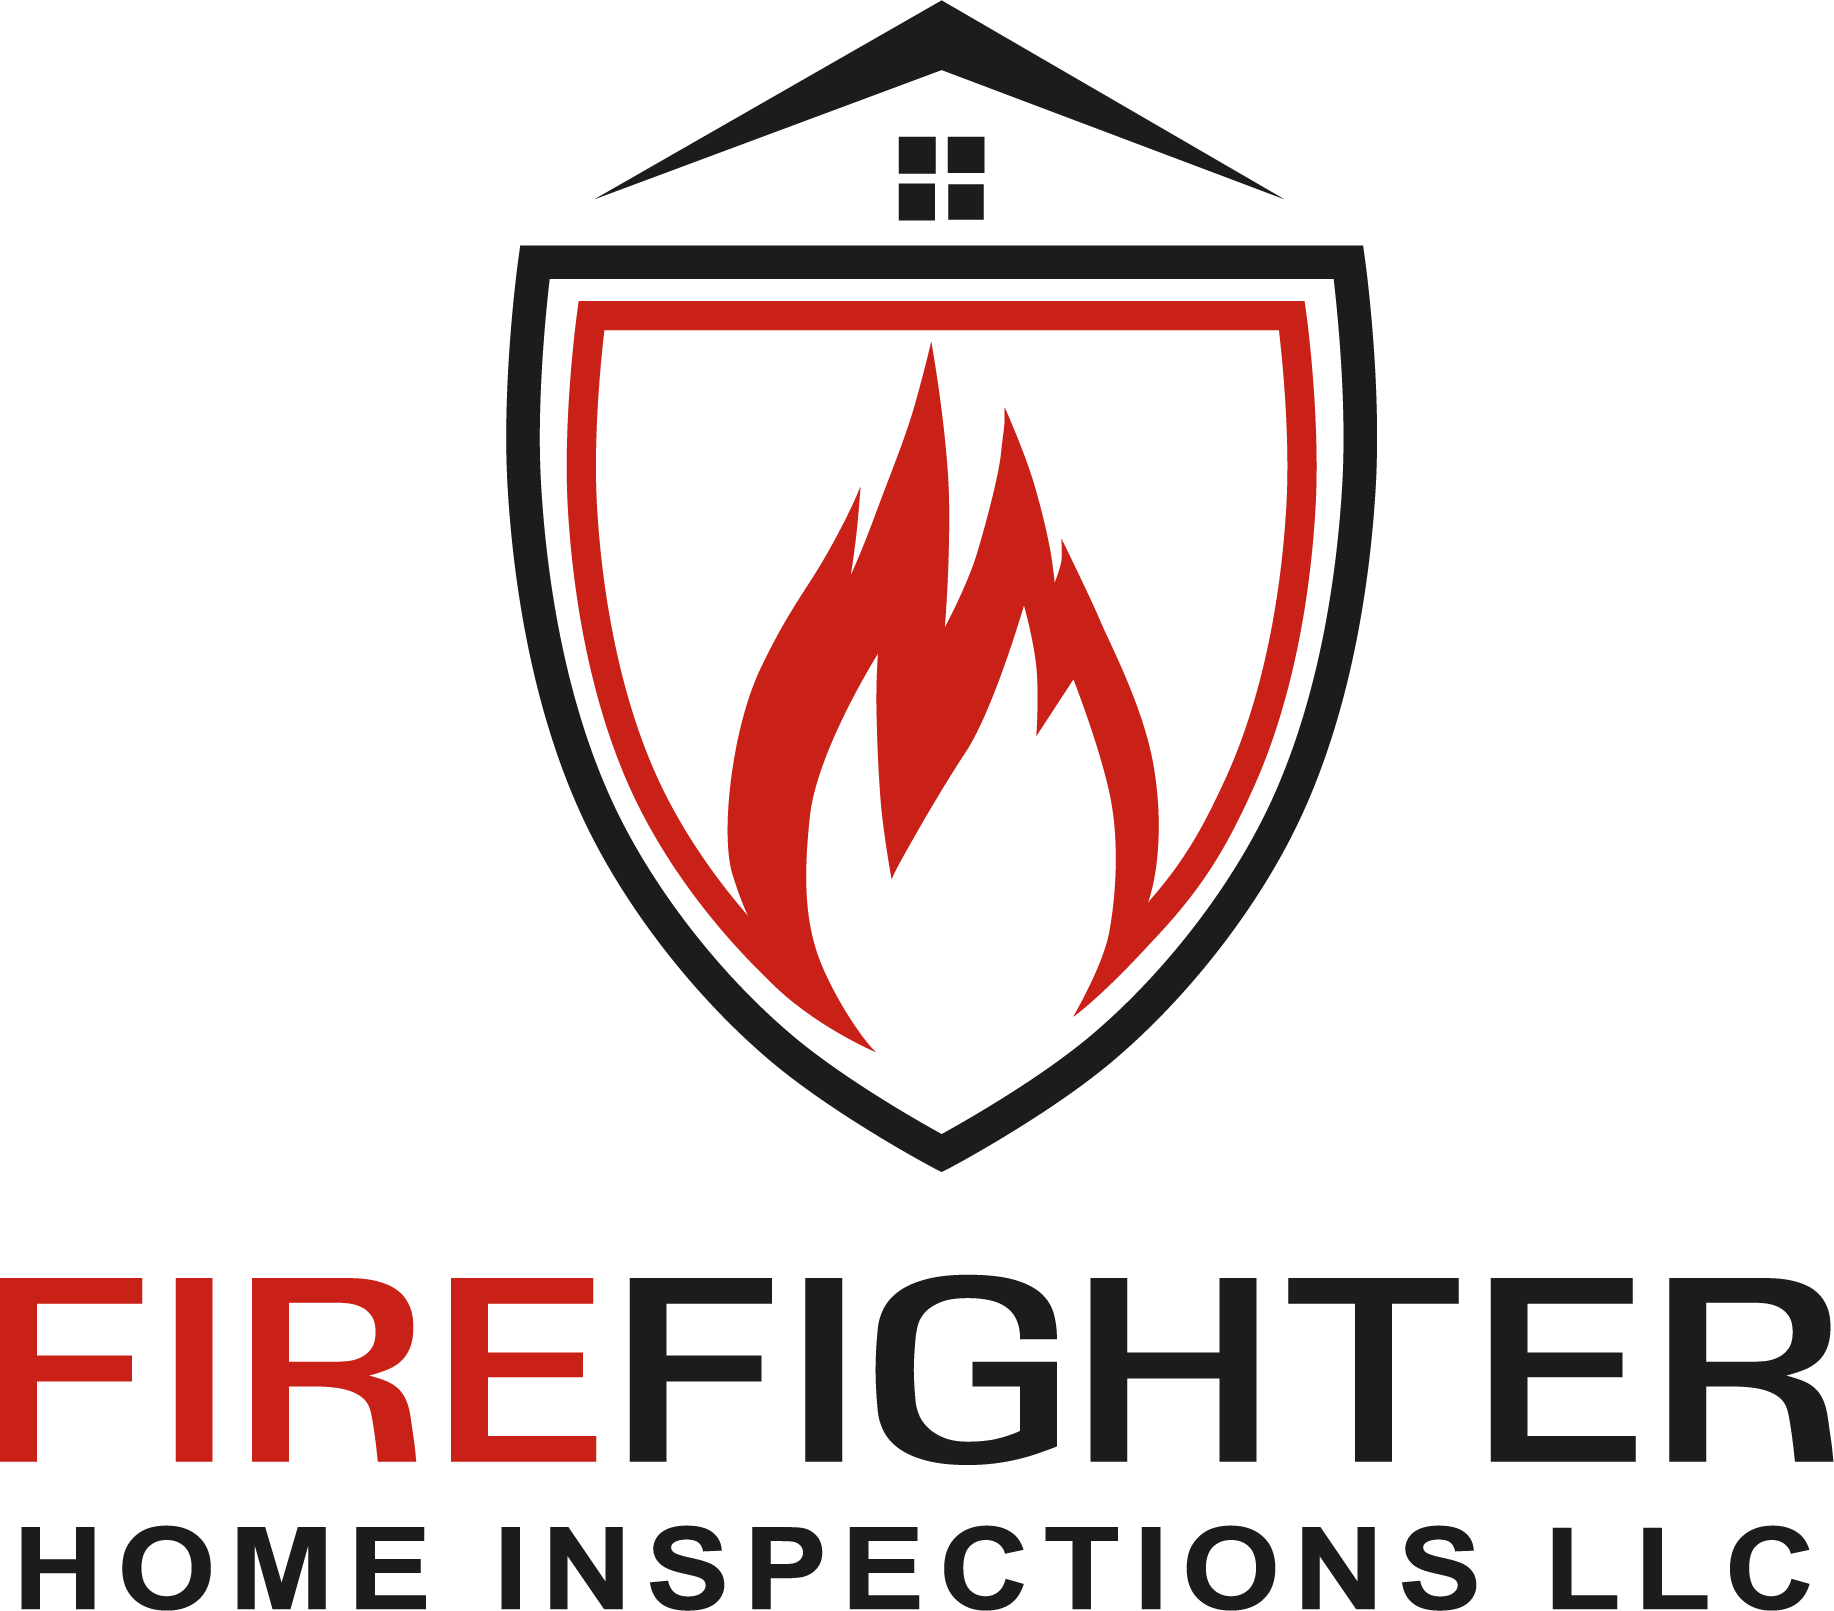 Firefighter home inspections logo red fire black shield